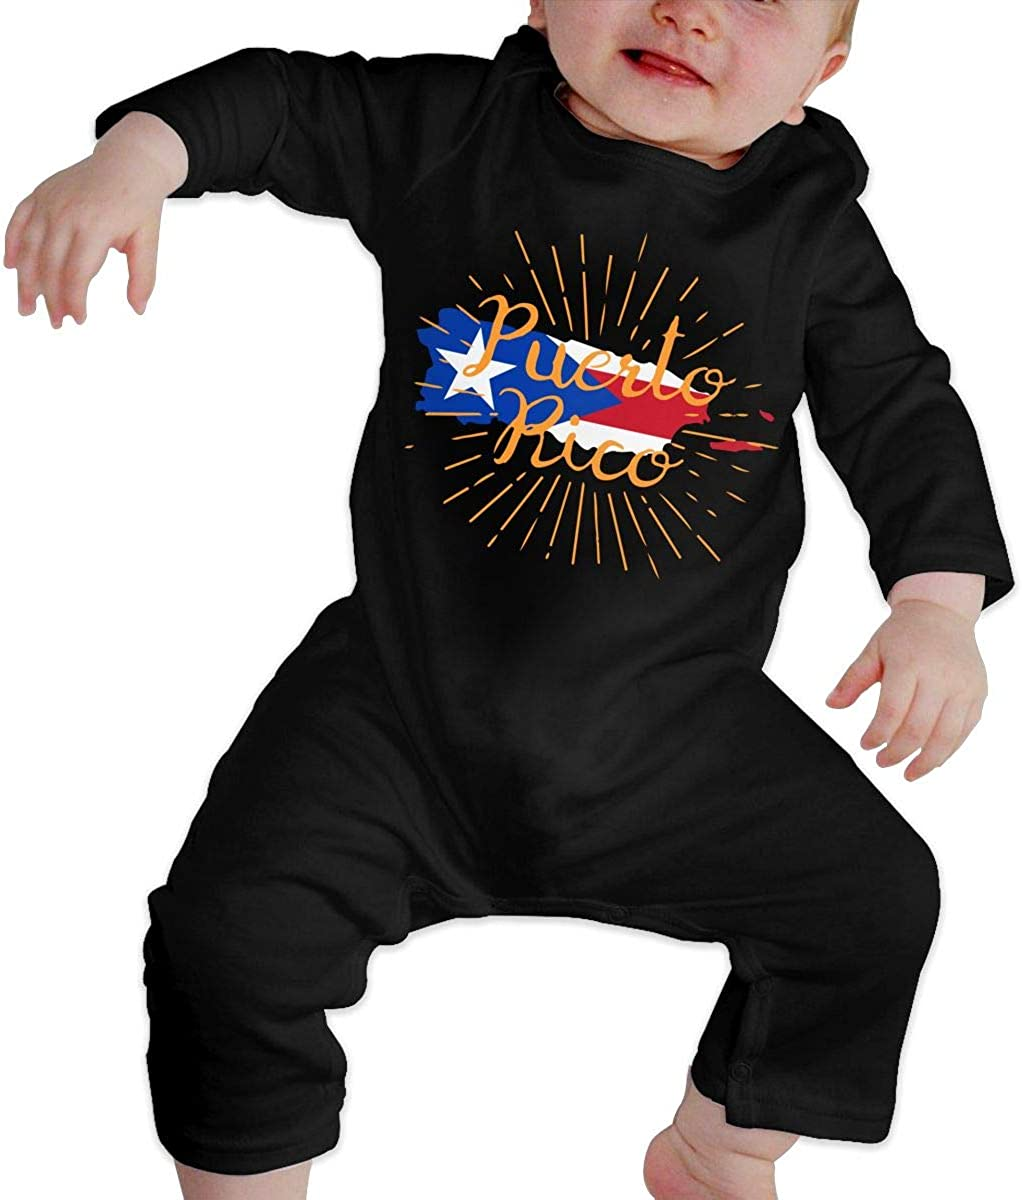 Toddler Baby Boy Romper Jumpsuit Puerto Rico-1 Organic One-Piece Bodysuits Coverall Outfits